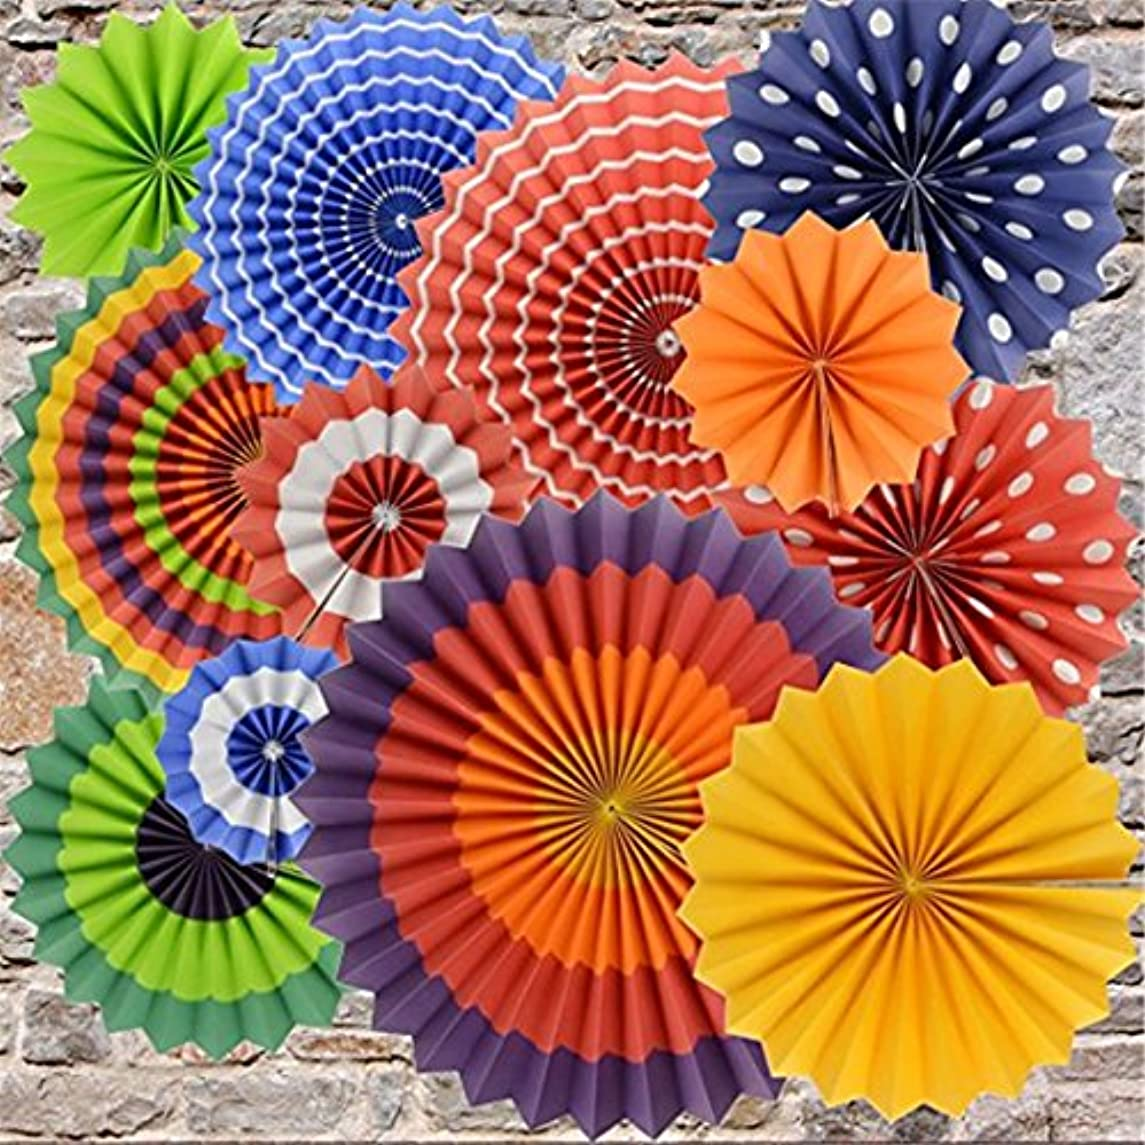 Festival Paper Fan, BeiLan 12 Pack Hanging Paper Fan Decorations Foldable Colorful Paper Fan Flower for Birthday Party Wedding Celebration Baby Festival Decoration